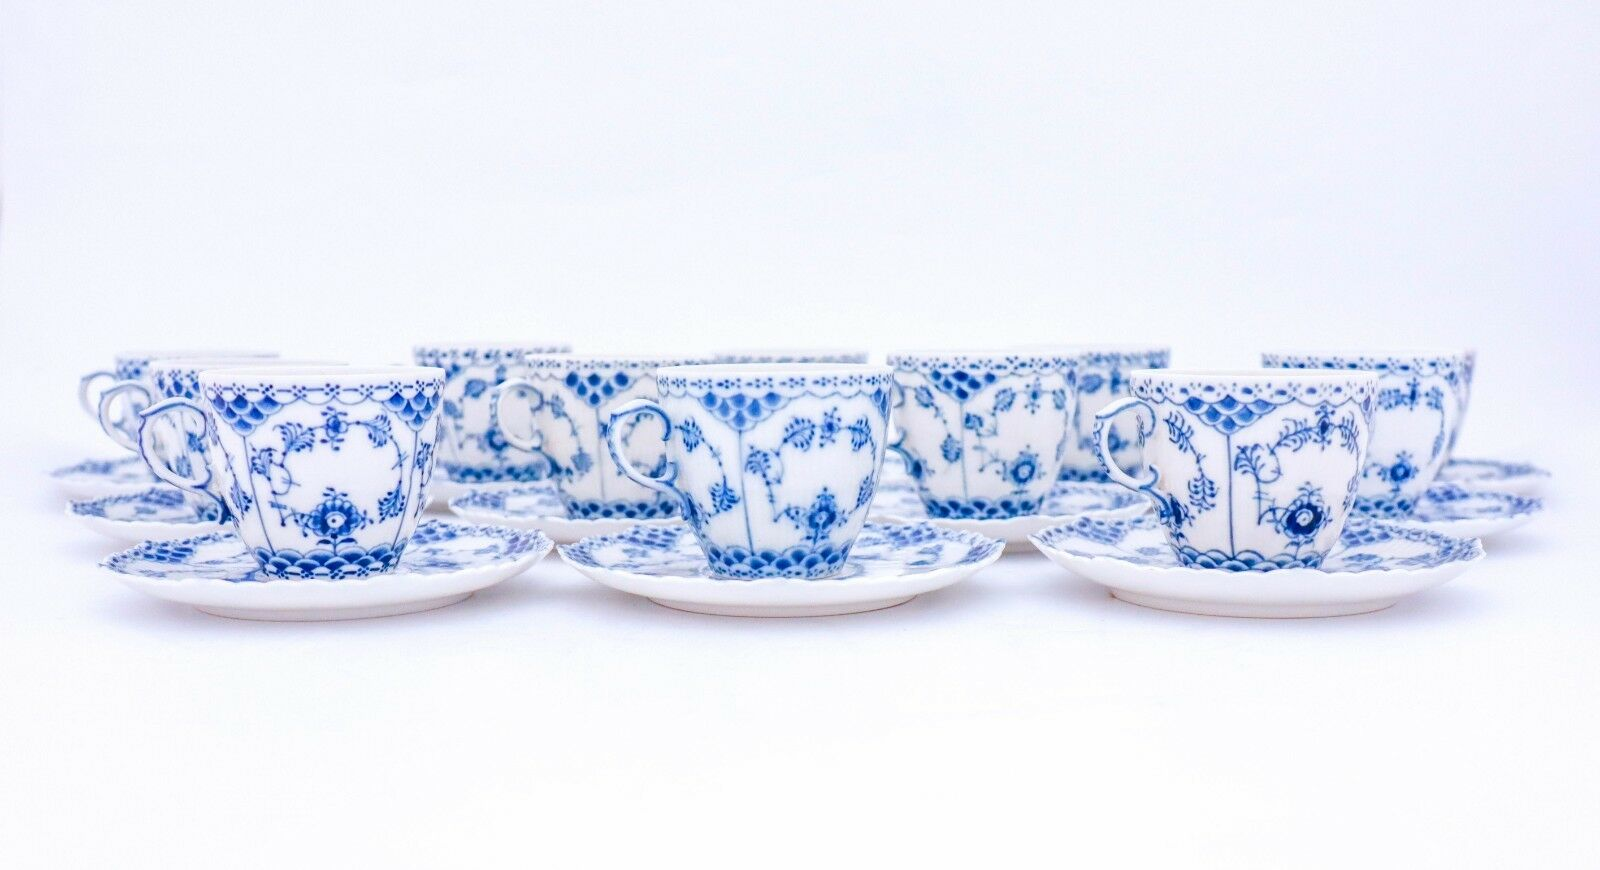 Image 2 - 12 Cups & Saucers #1035 - Blue Fluted Royal Copenhagen Full Lace - 1:st Quality